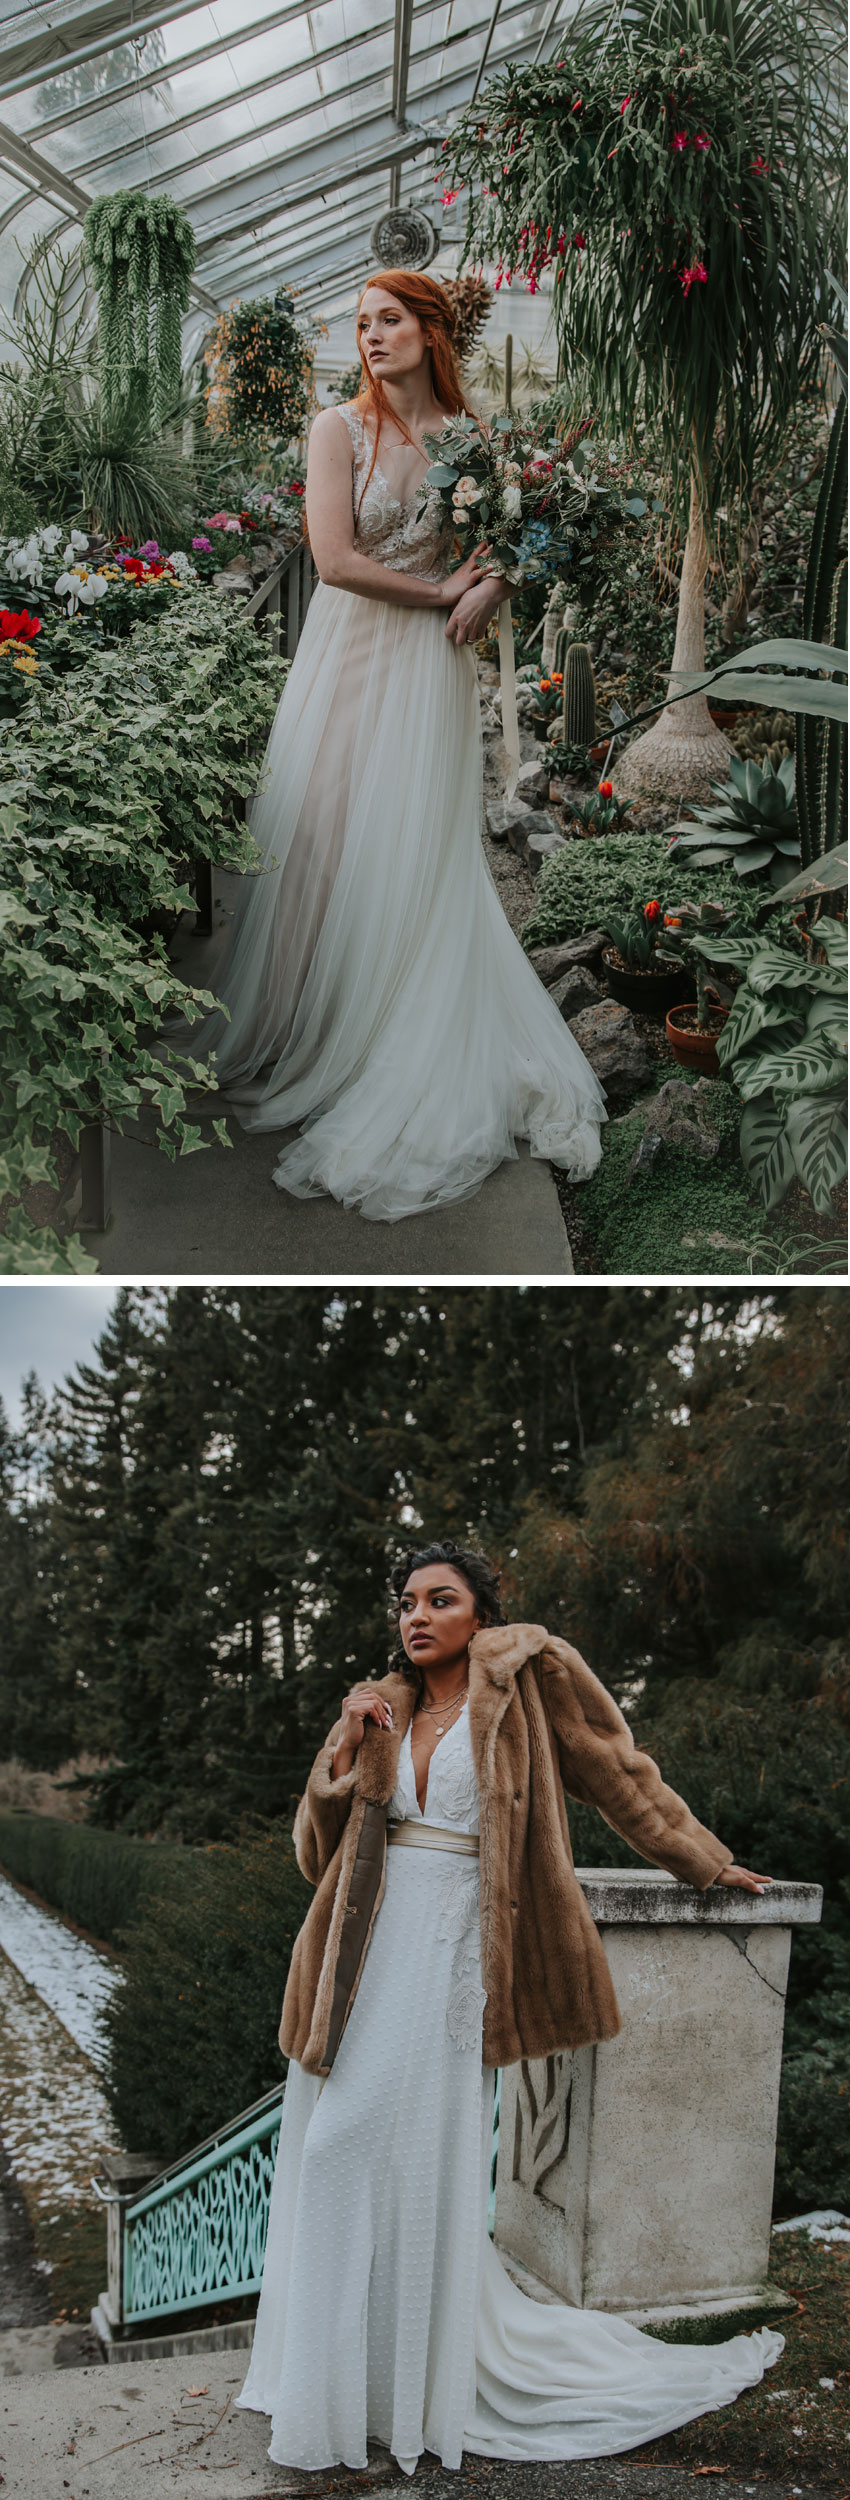 Last frost bridal style shoot in a green house